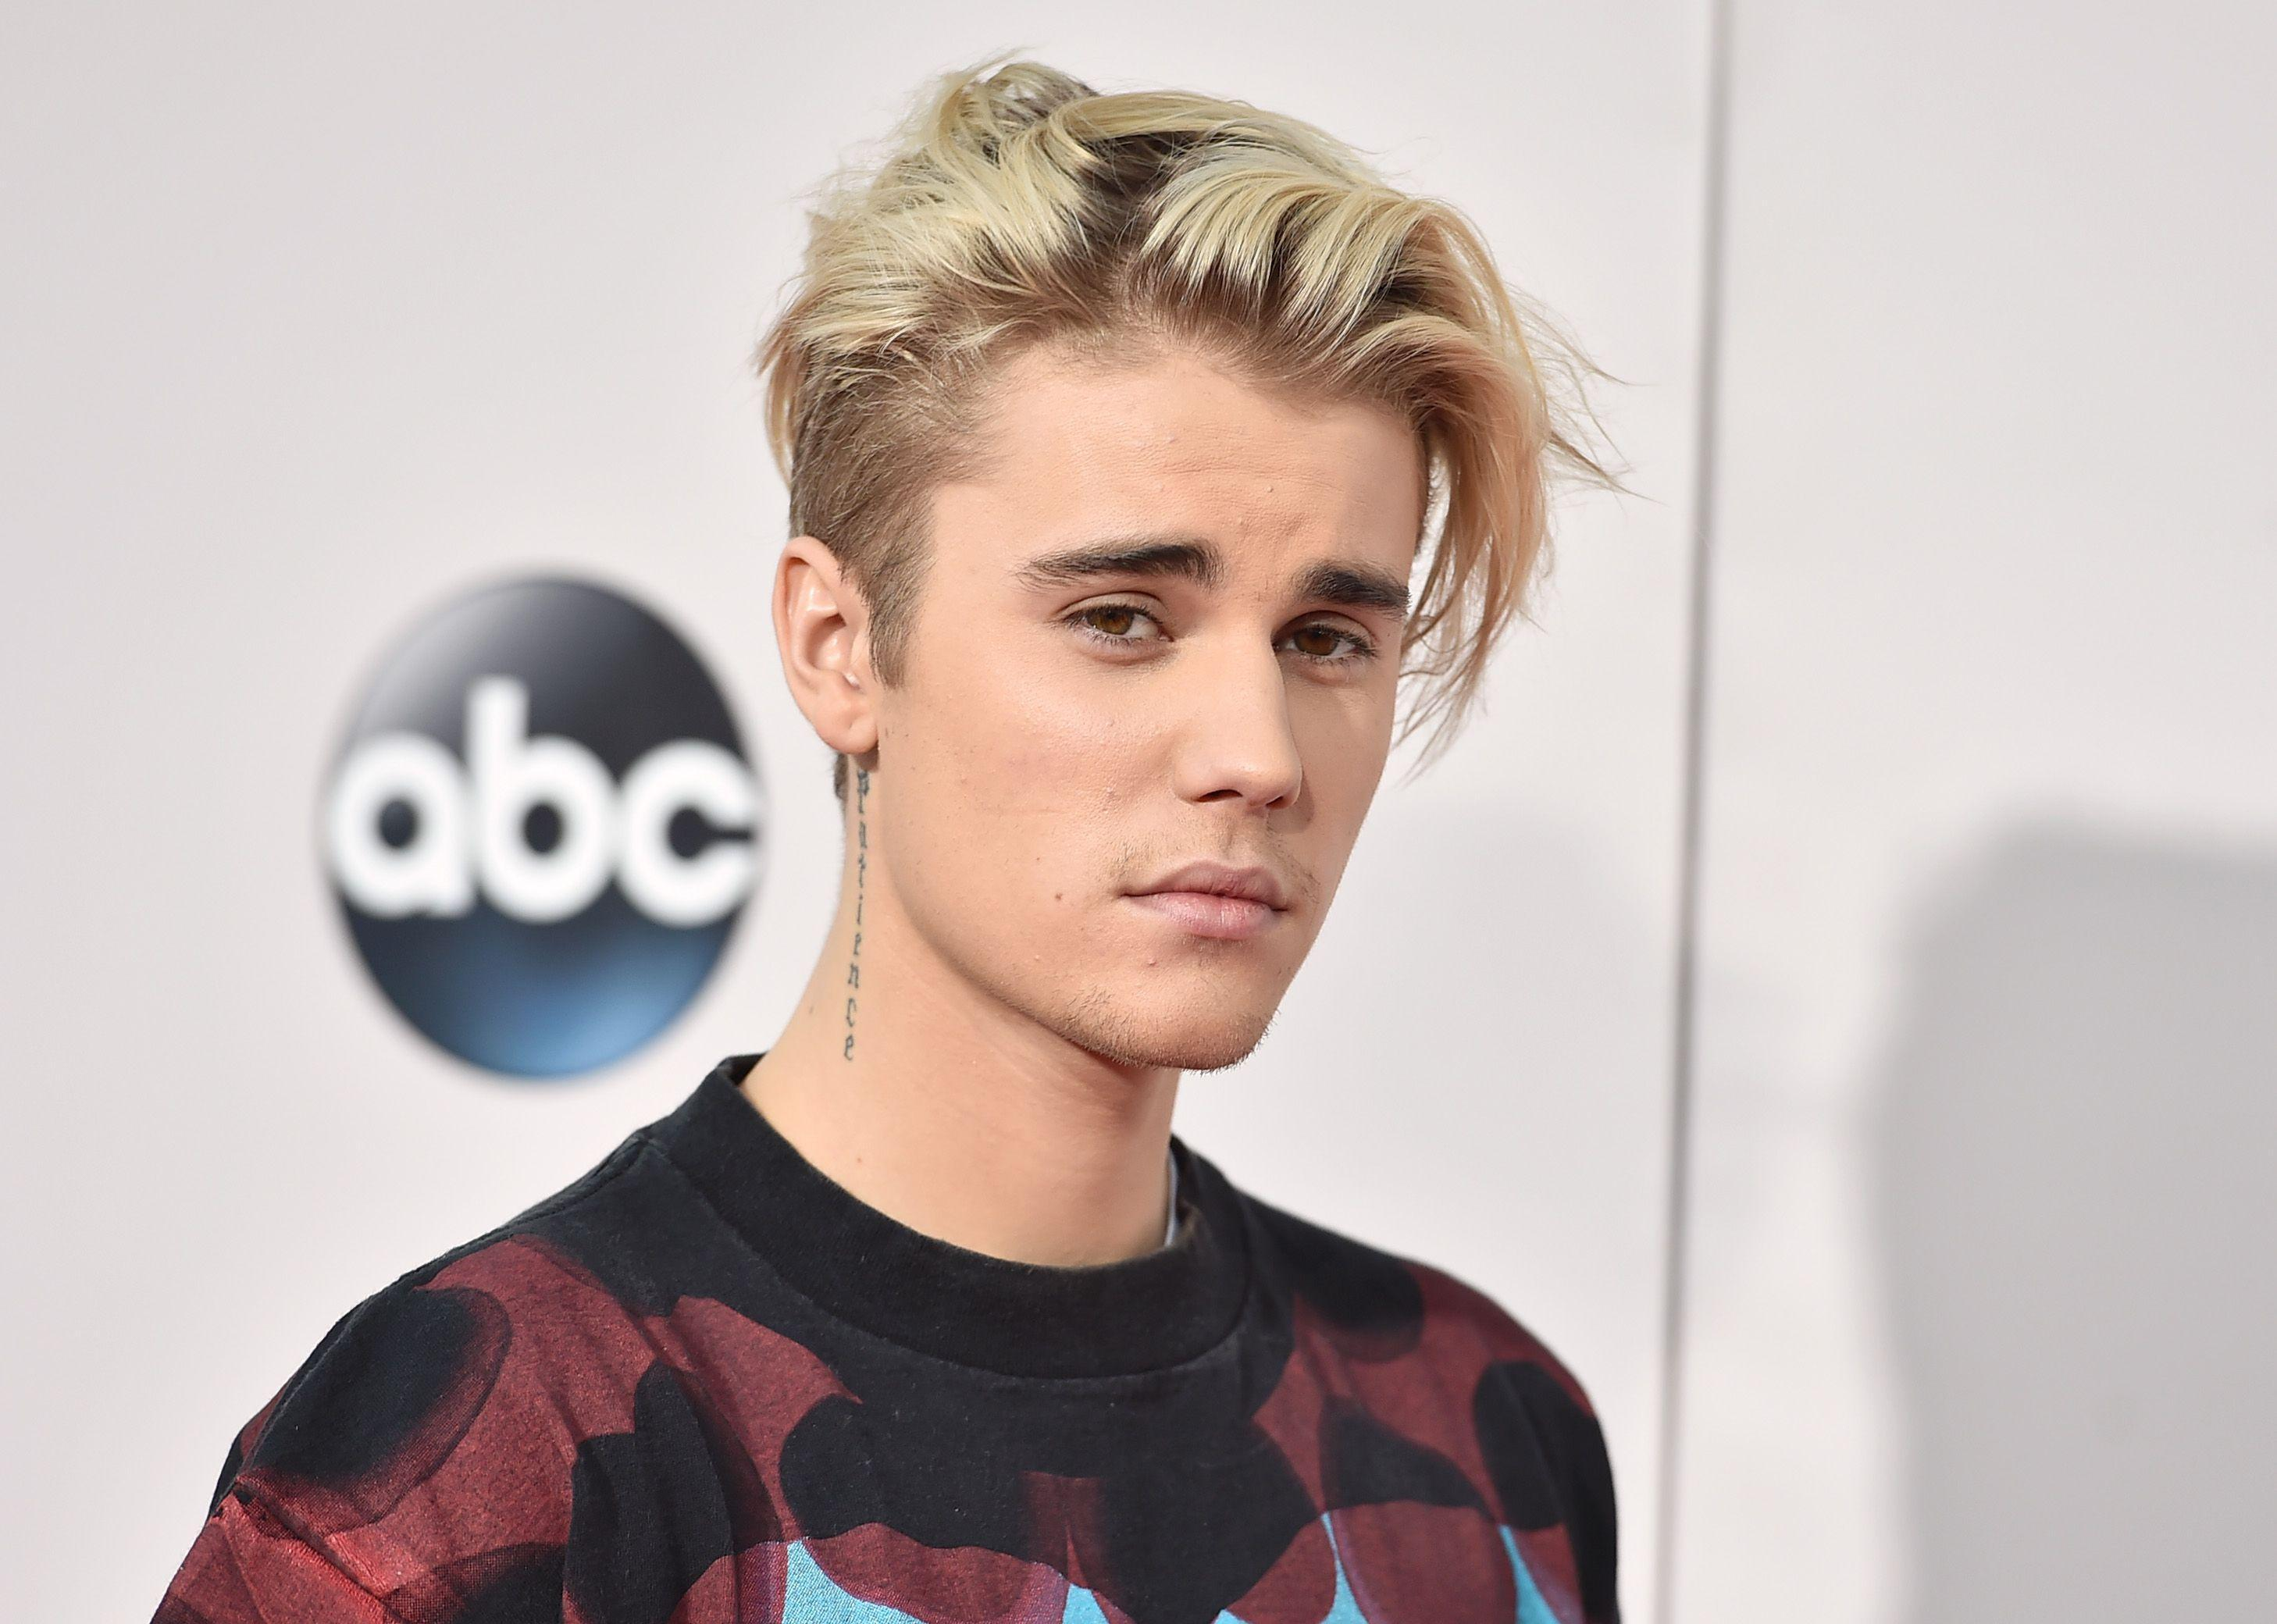 49+ HD Justin Bieber Wallpapers and Photos | View HQFX Wallpapers